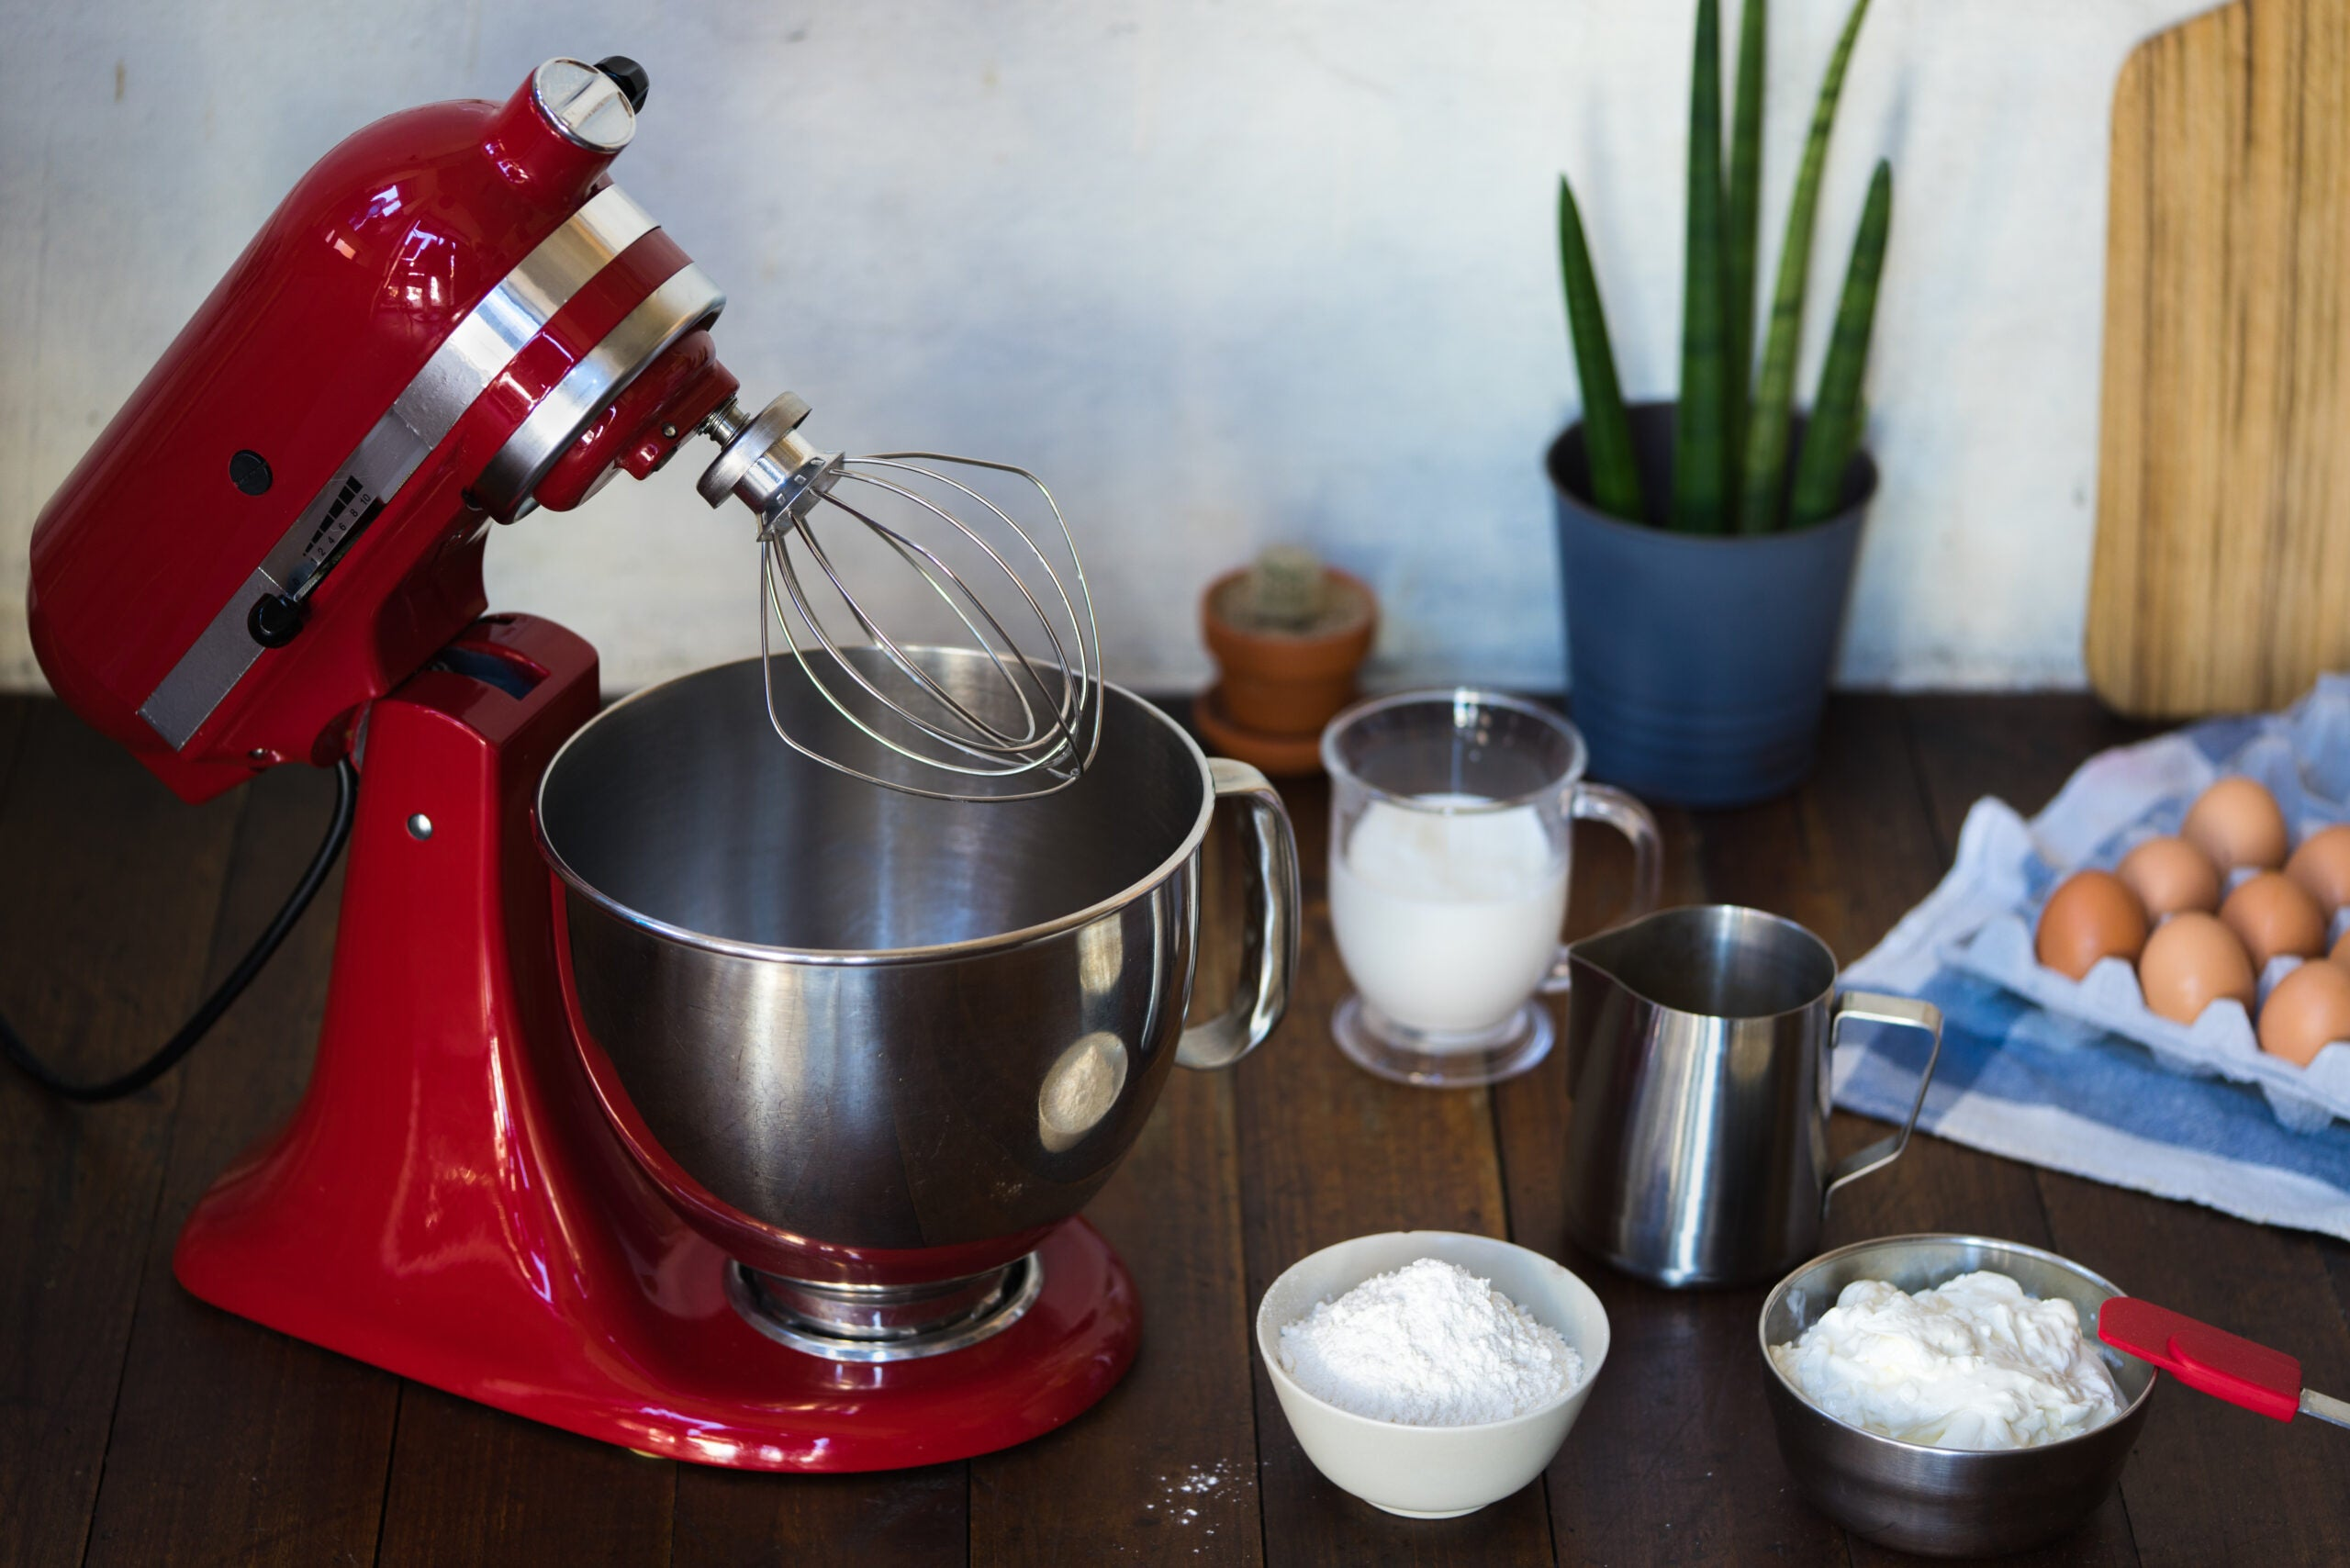 Open red standing mixer on wooden table